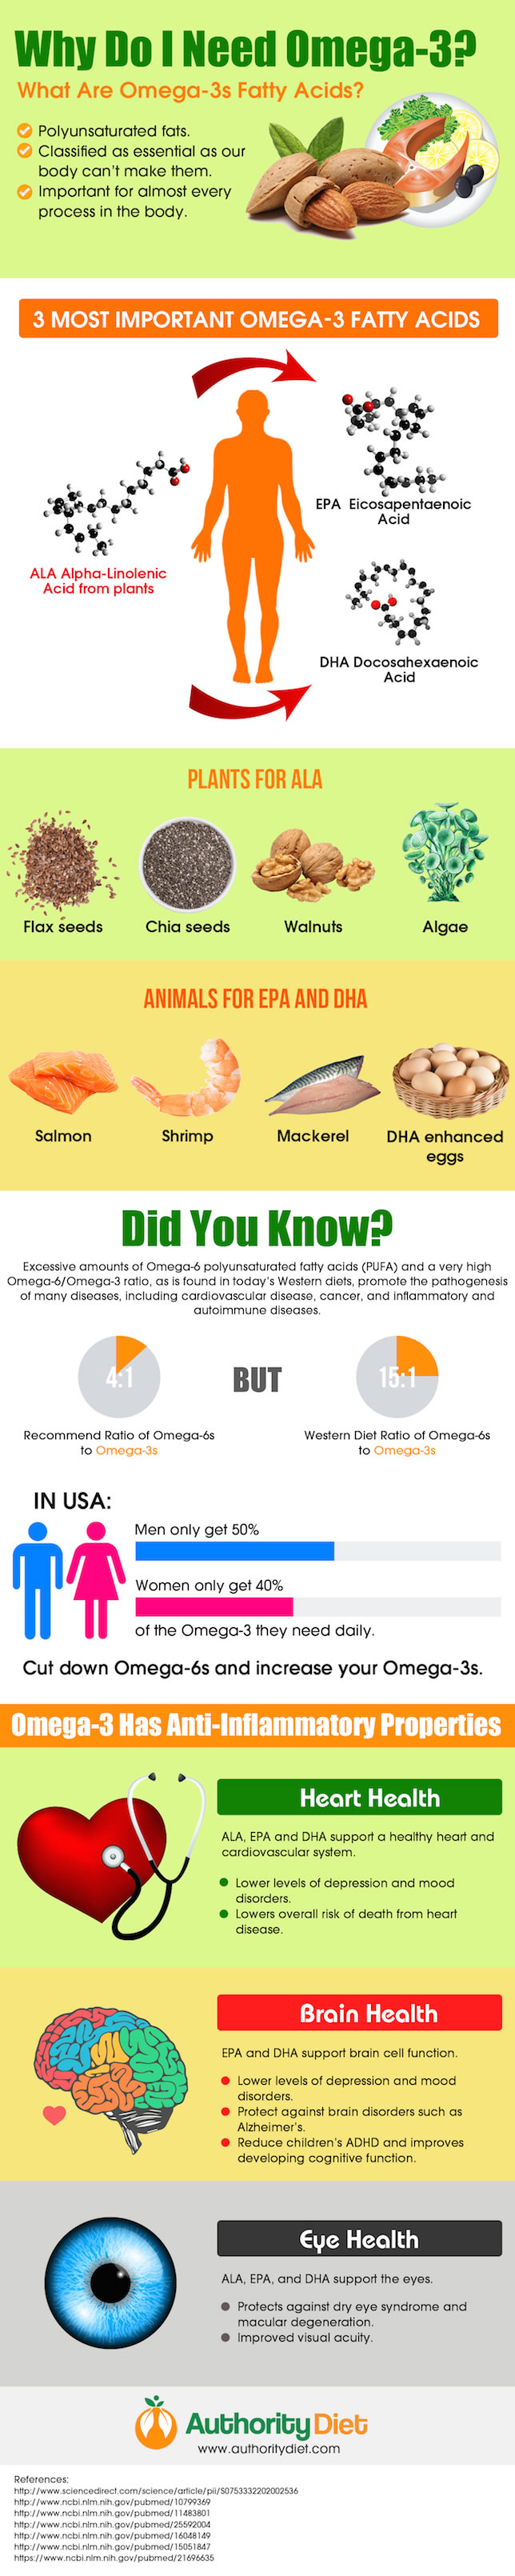 The 3 Most Important Omega-3 Fatty Acids